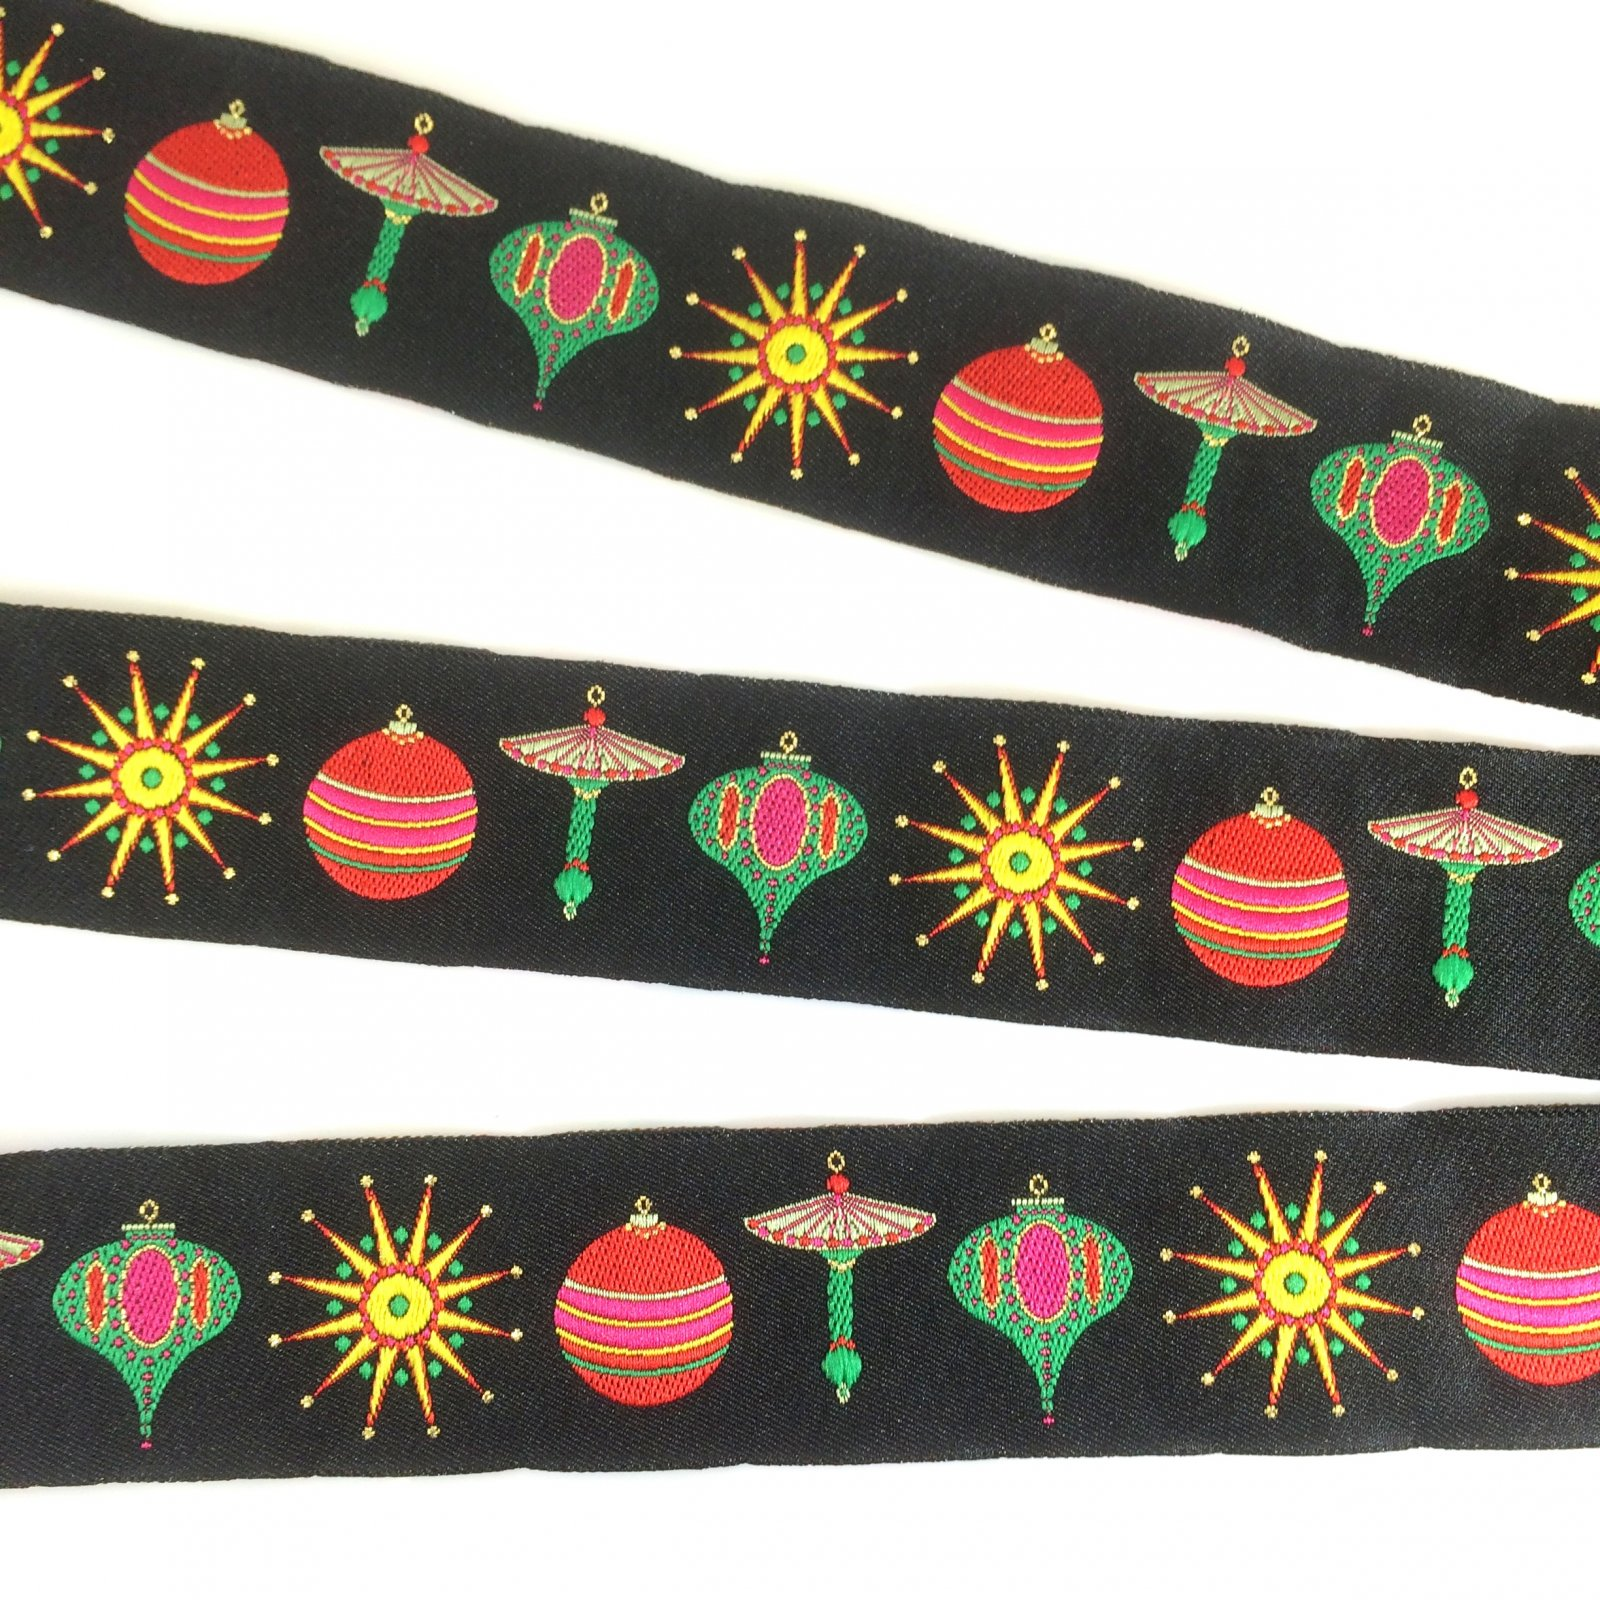 RENAISSANCE RIBBONS - CHRISTMAS ORNAMENTS ON BLACK 40MM